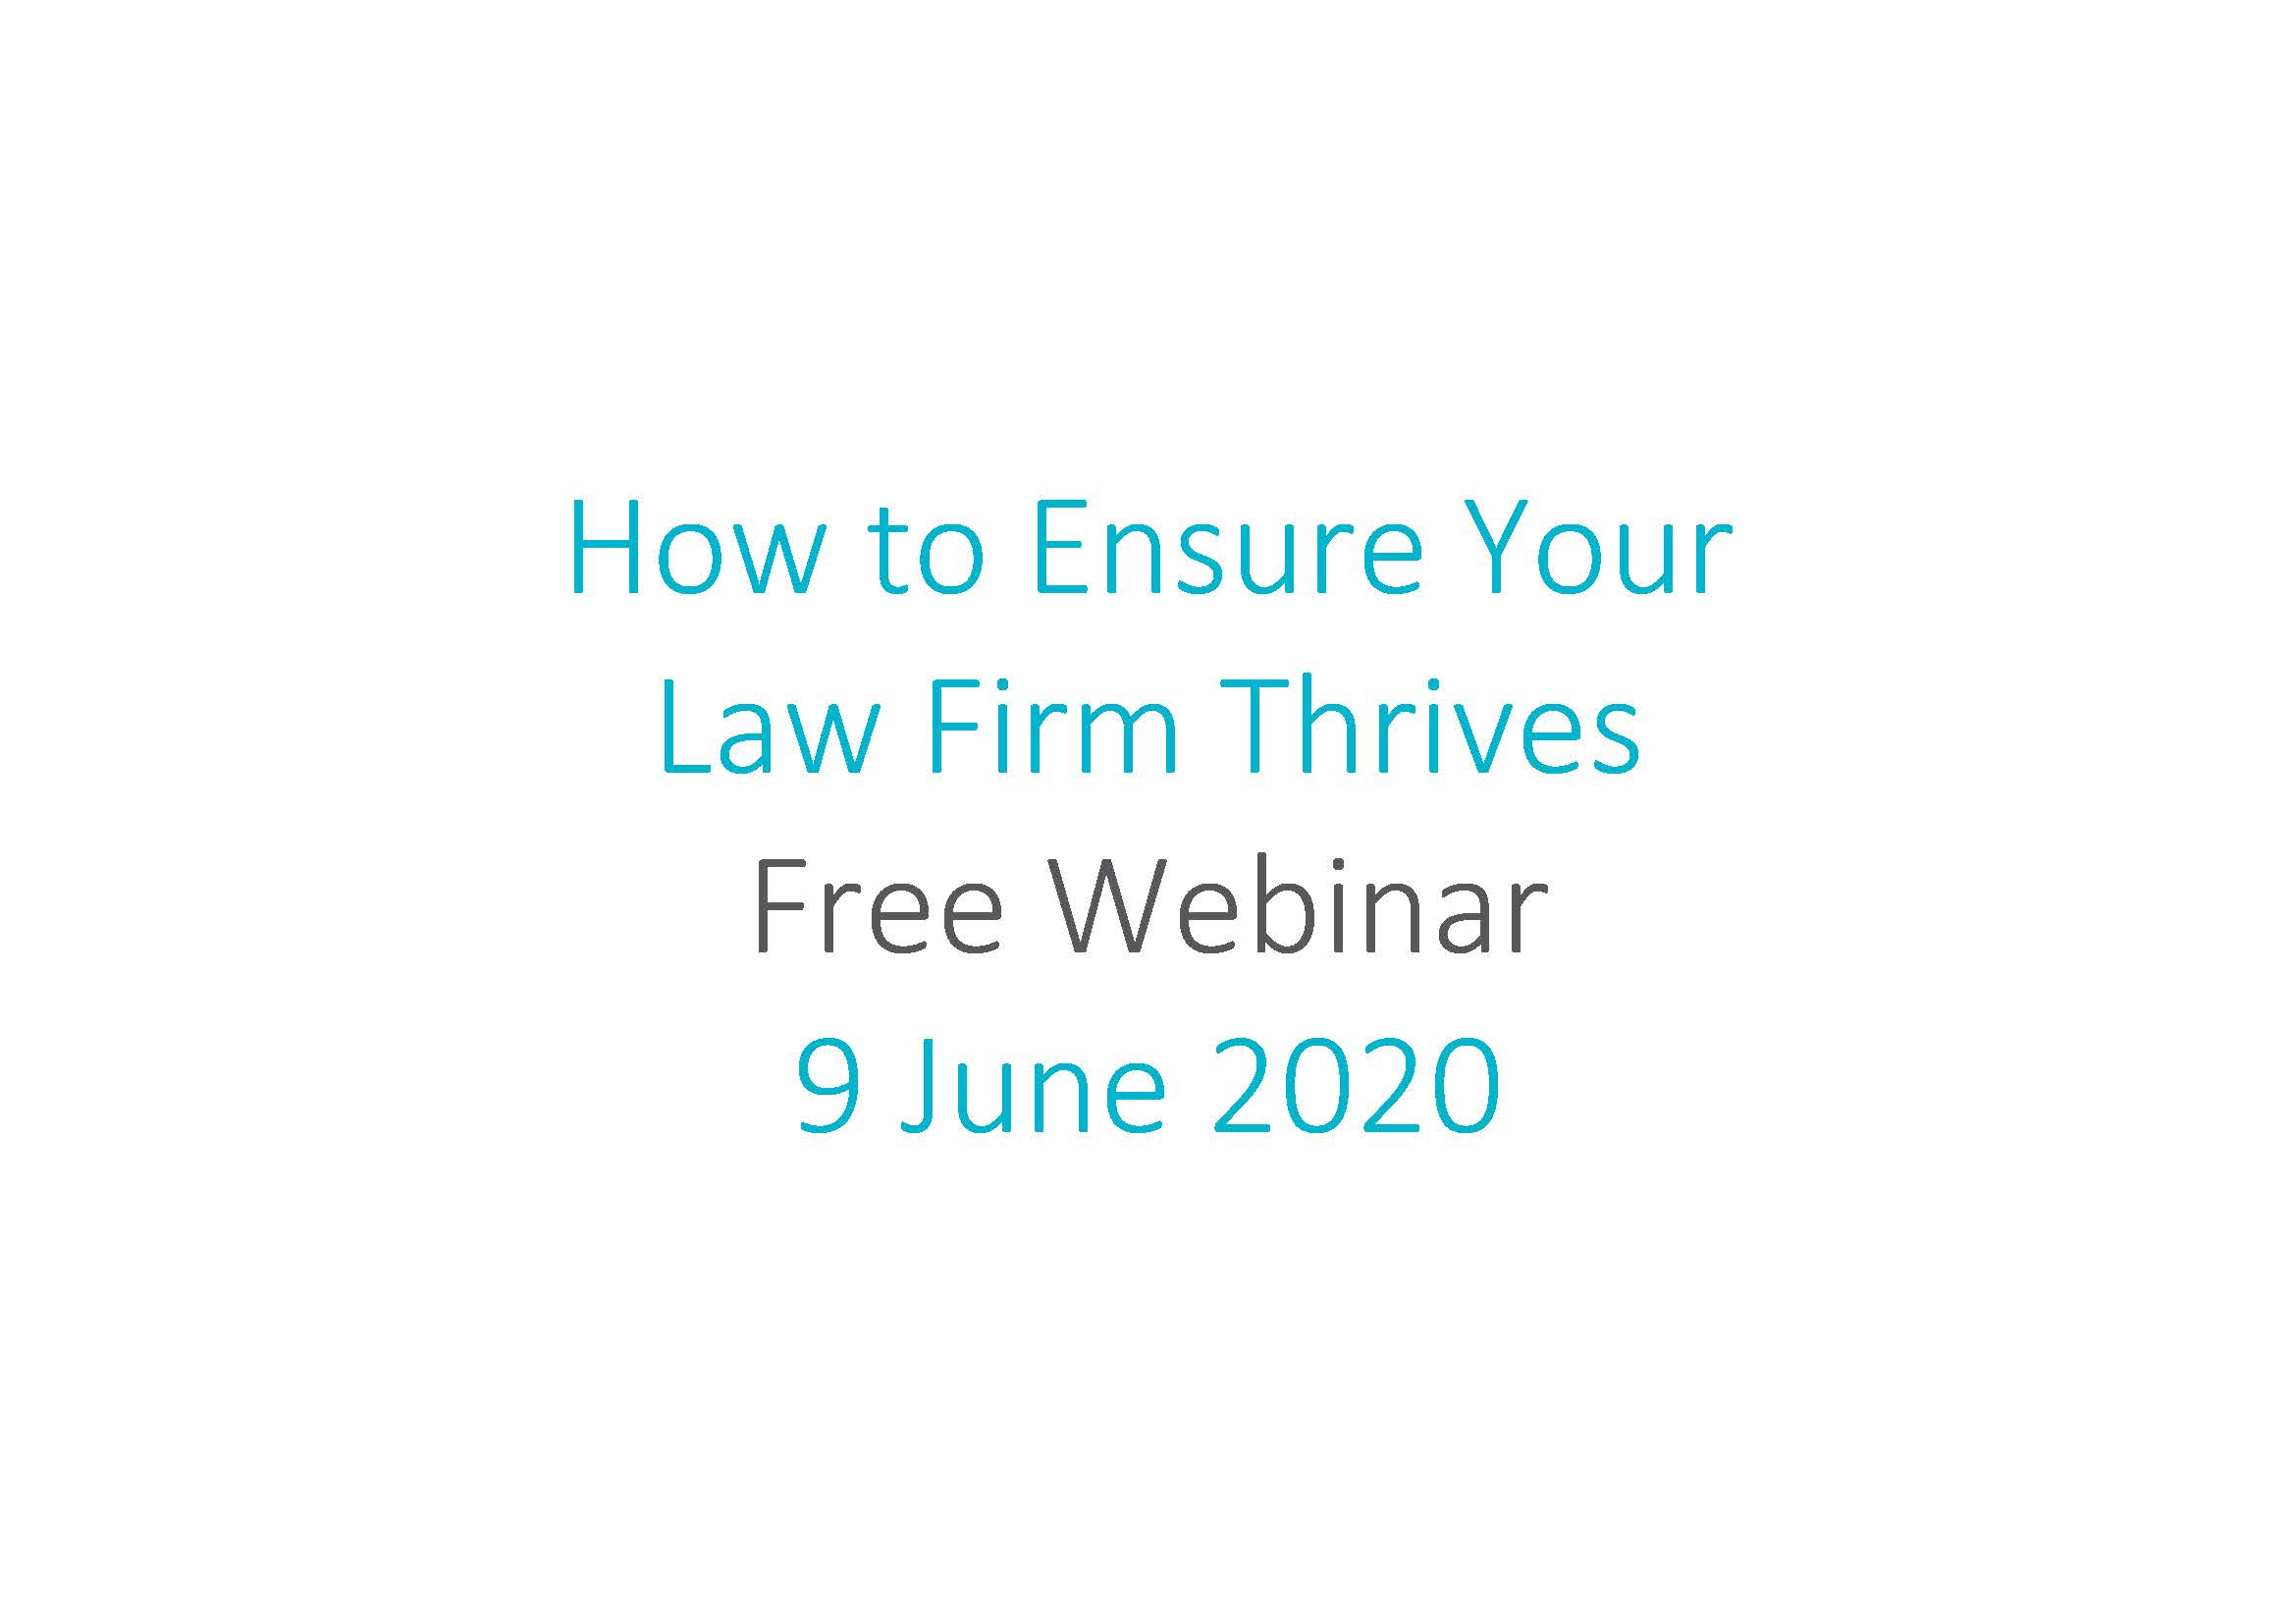 How to Ensure your Law Firm Thrives Webinar